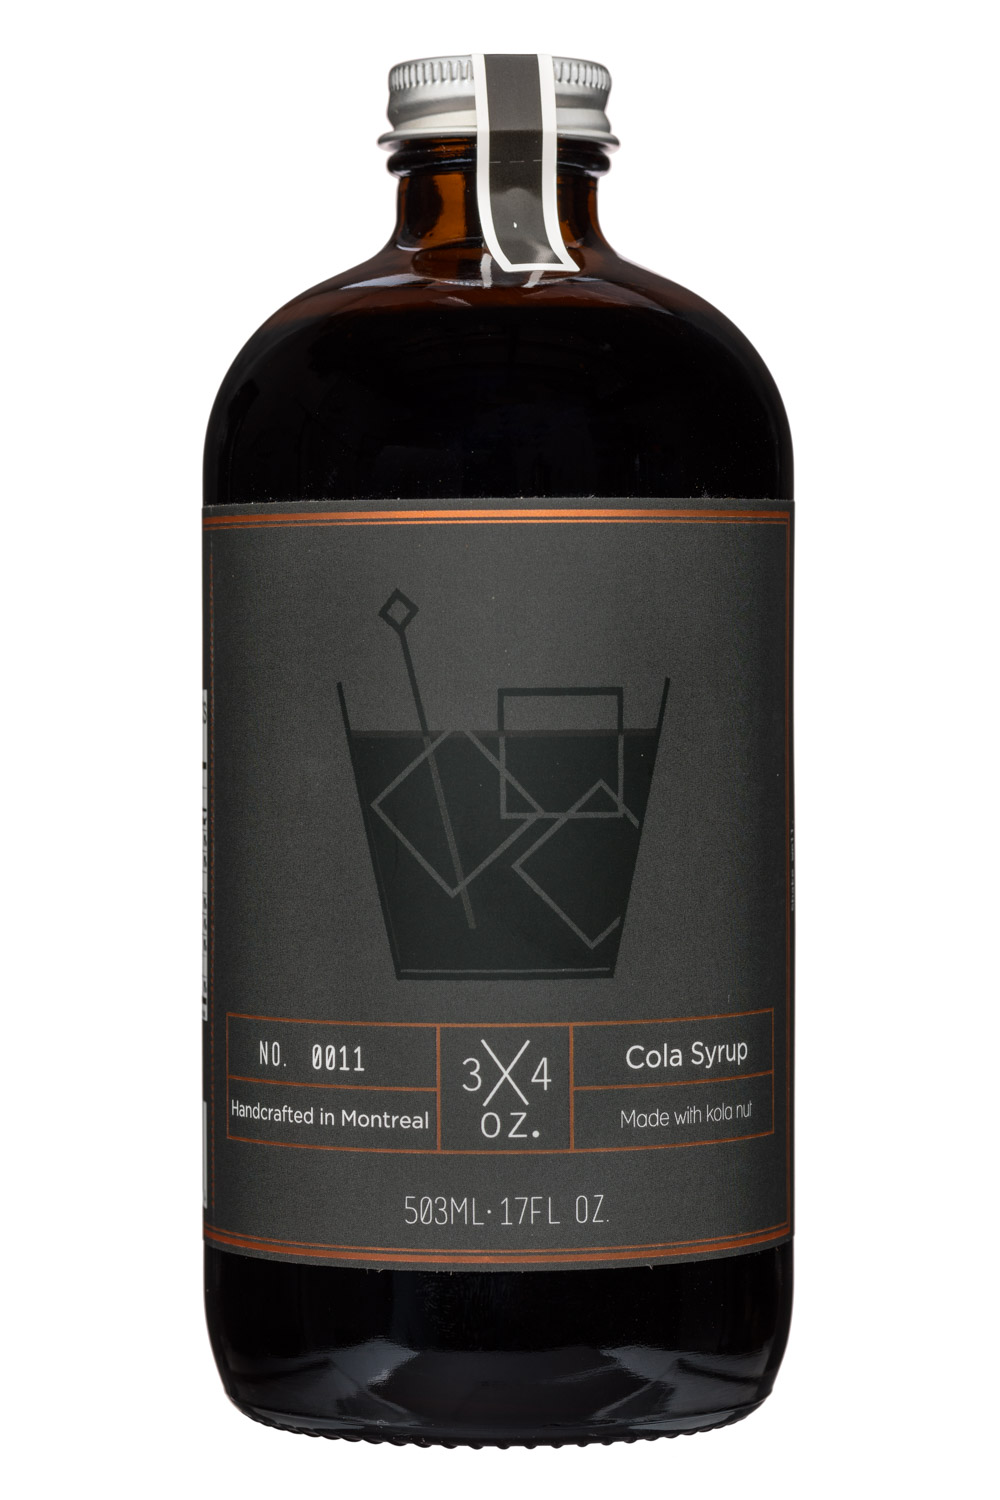 Cola Syrup